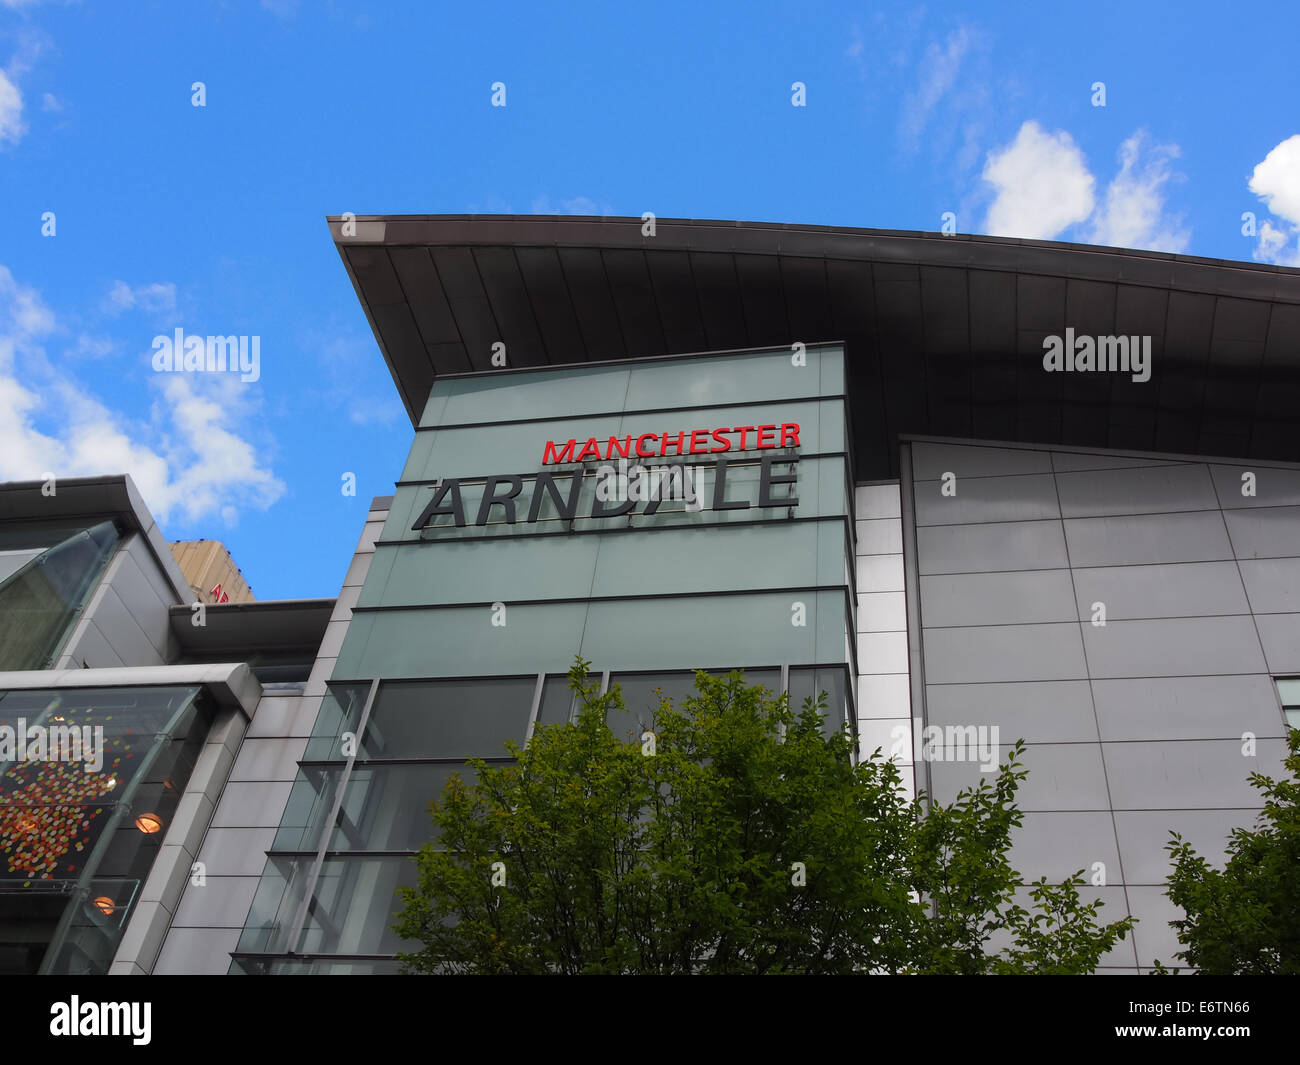 The sign at the entrance to Manchester Arndale shopping centre, England - Stock Image